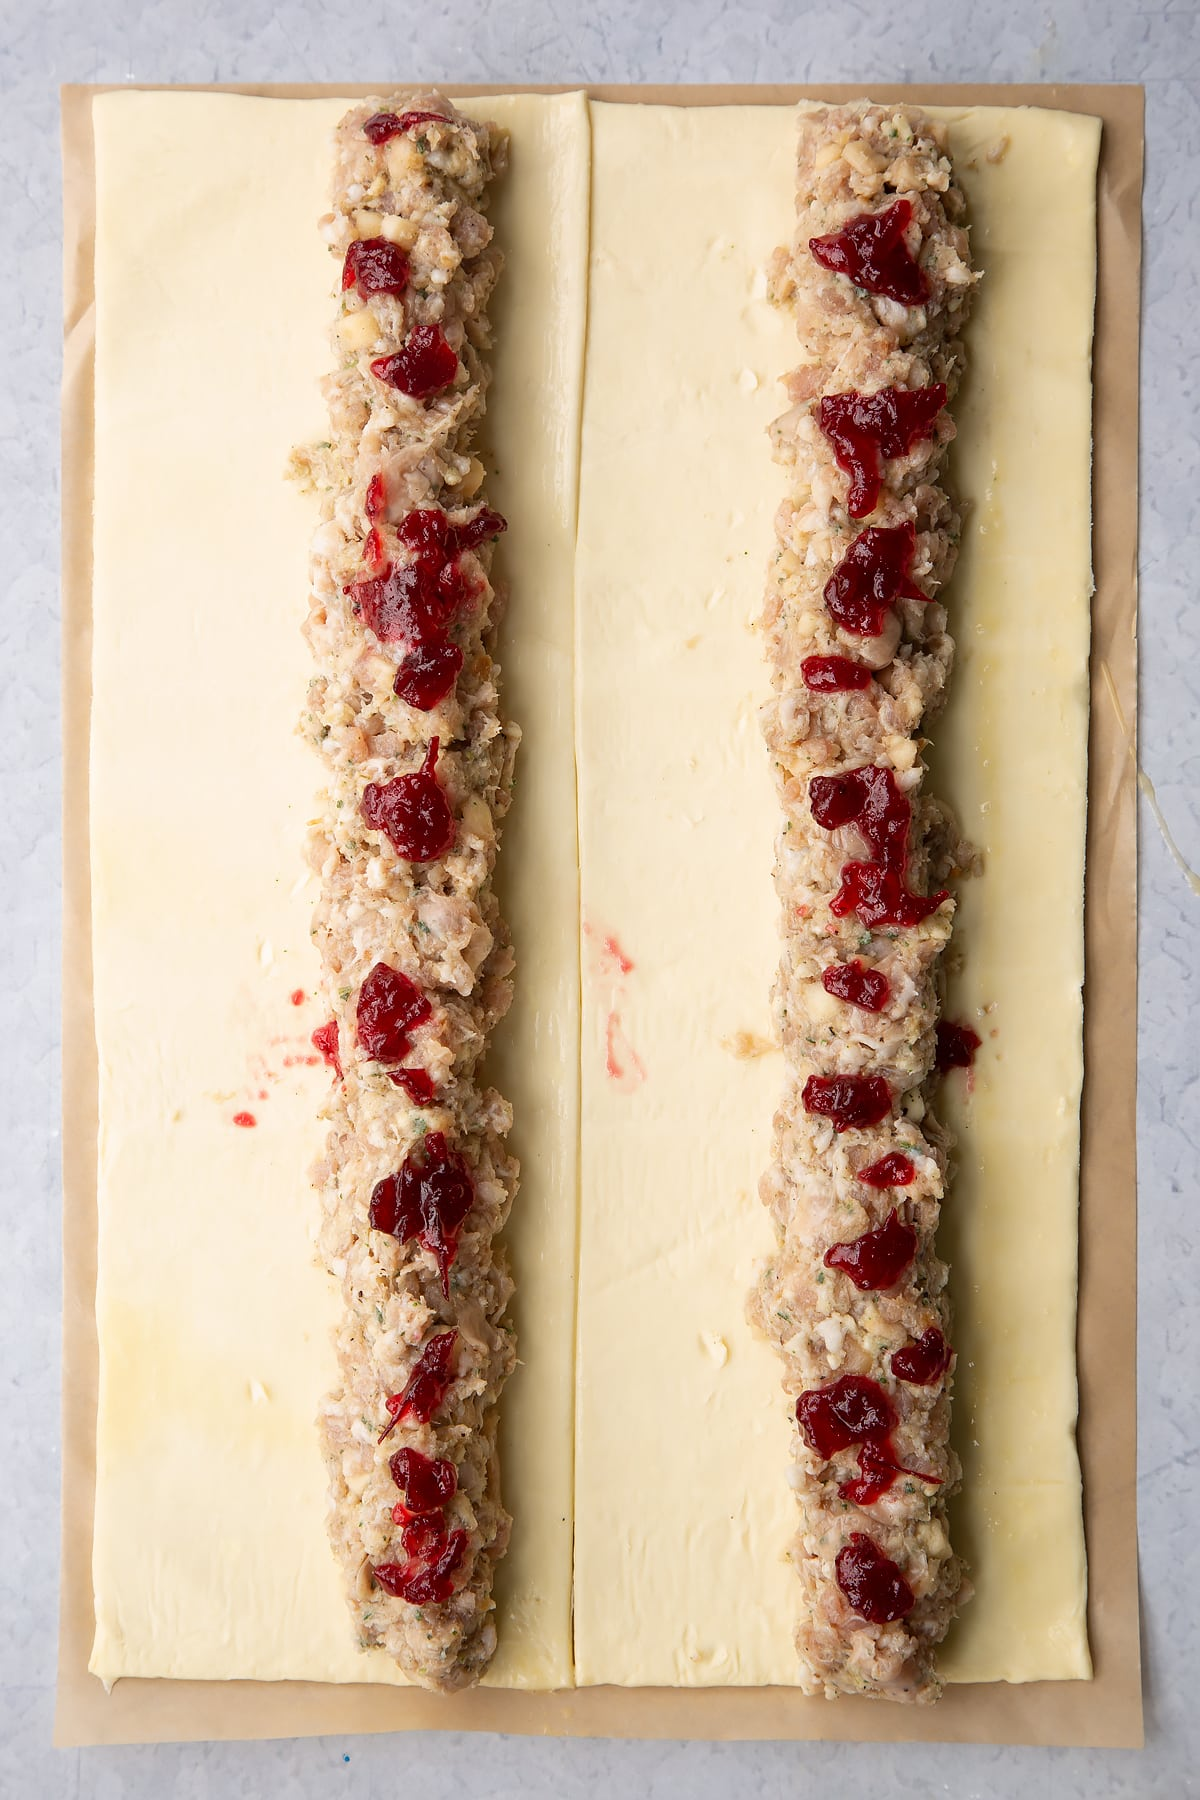 A sheet of puff pastry cut in half lengthways. Each half is egg washed and has a length of festive sausage meat down the middle, dotted with cranberry sauce.